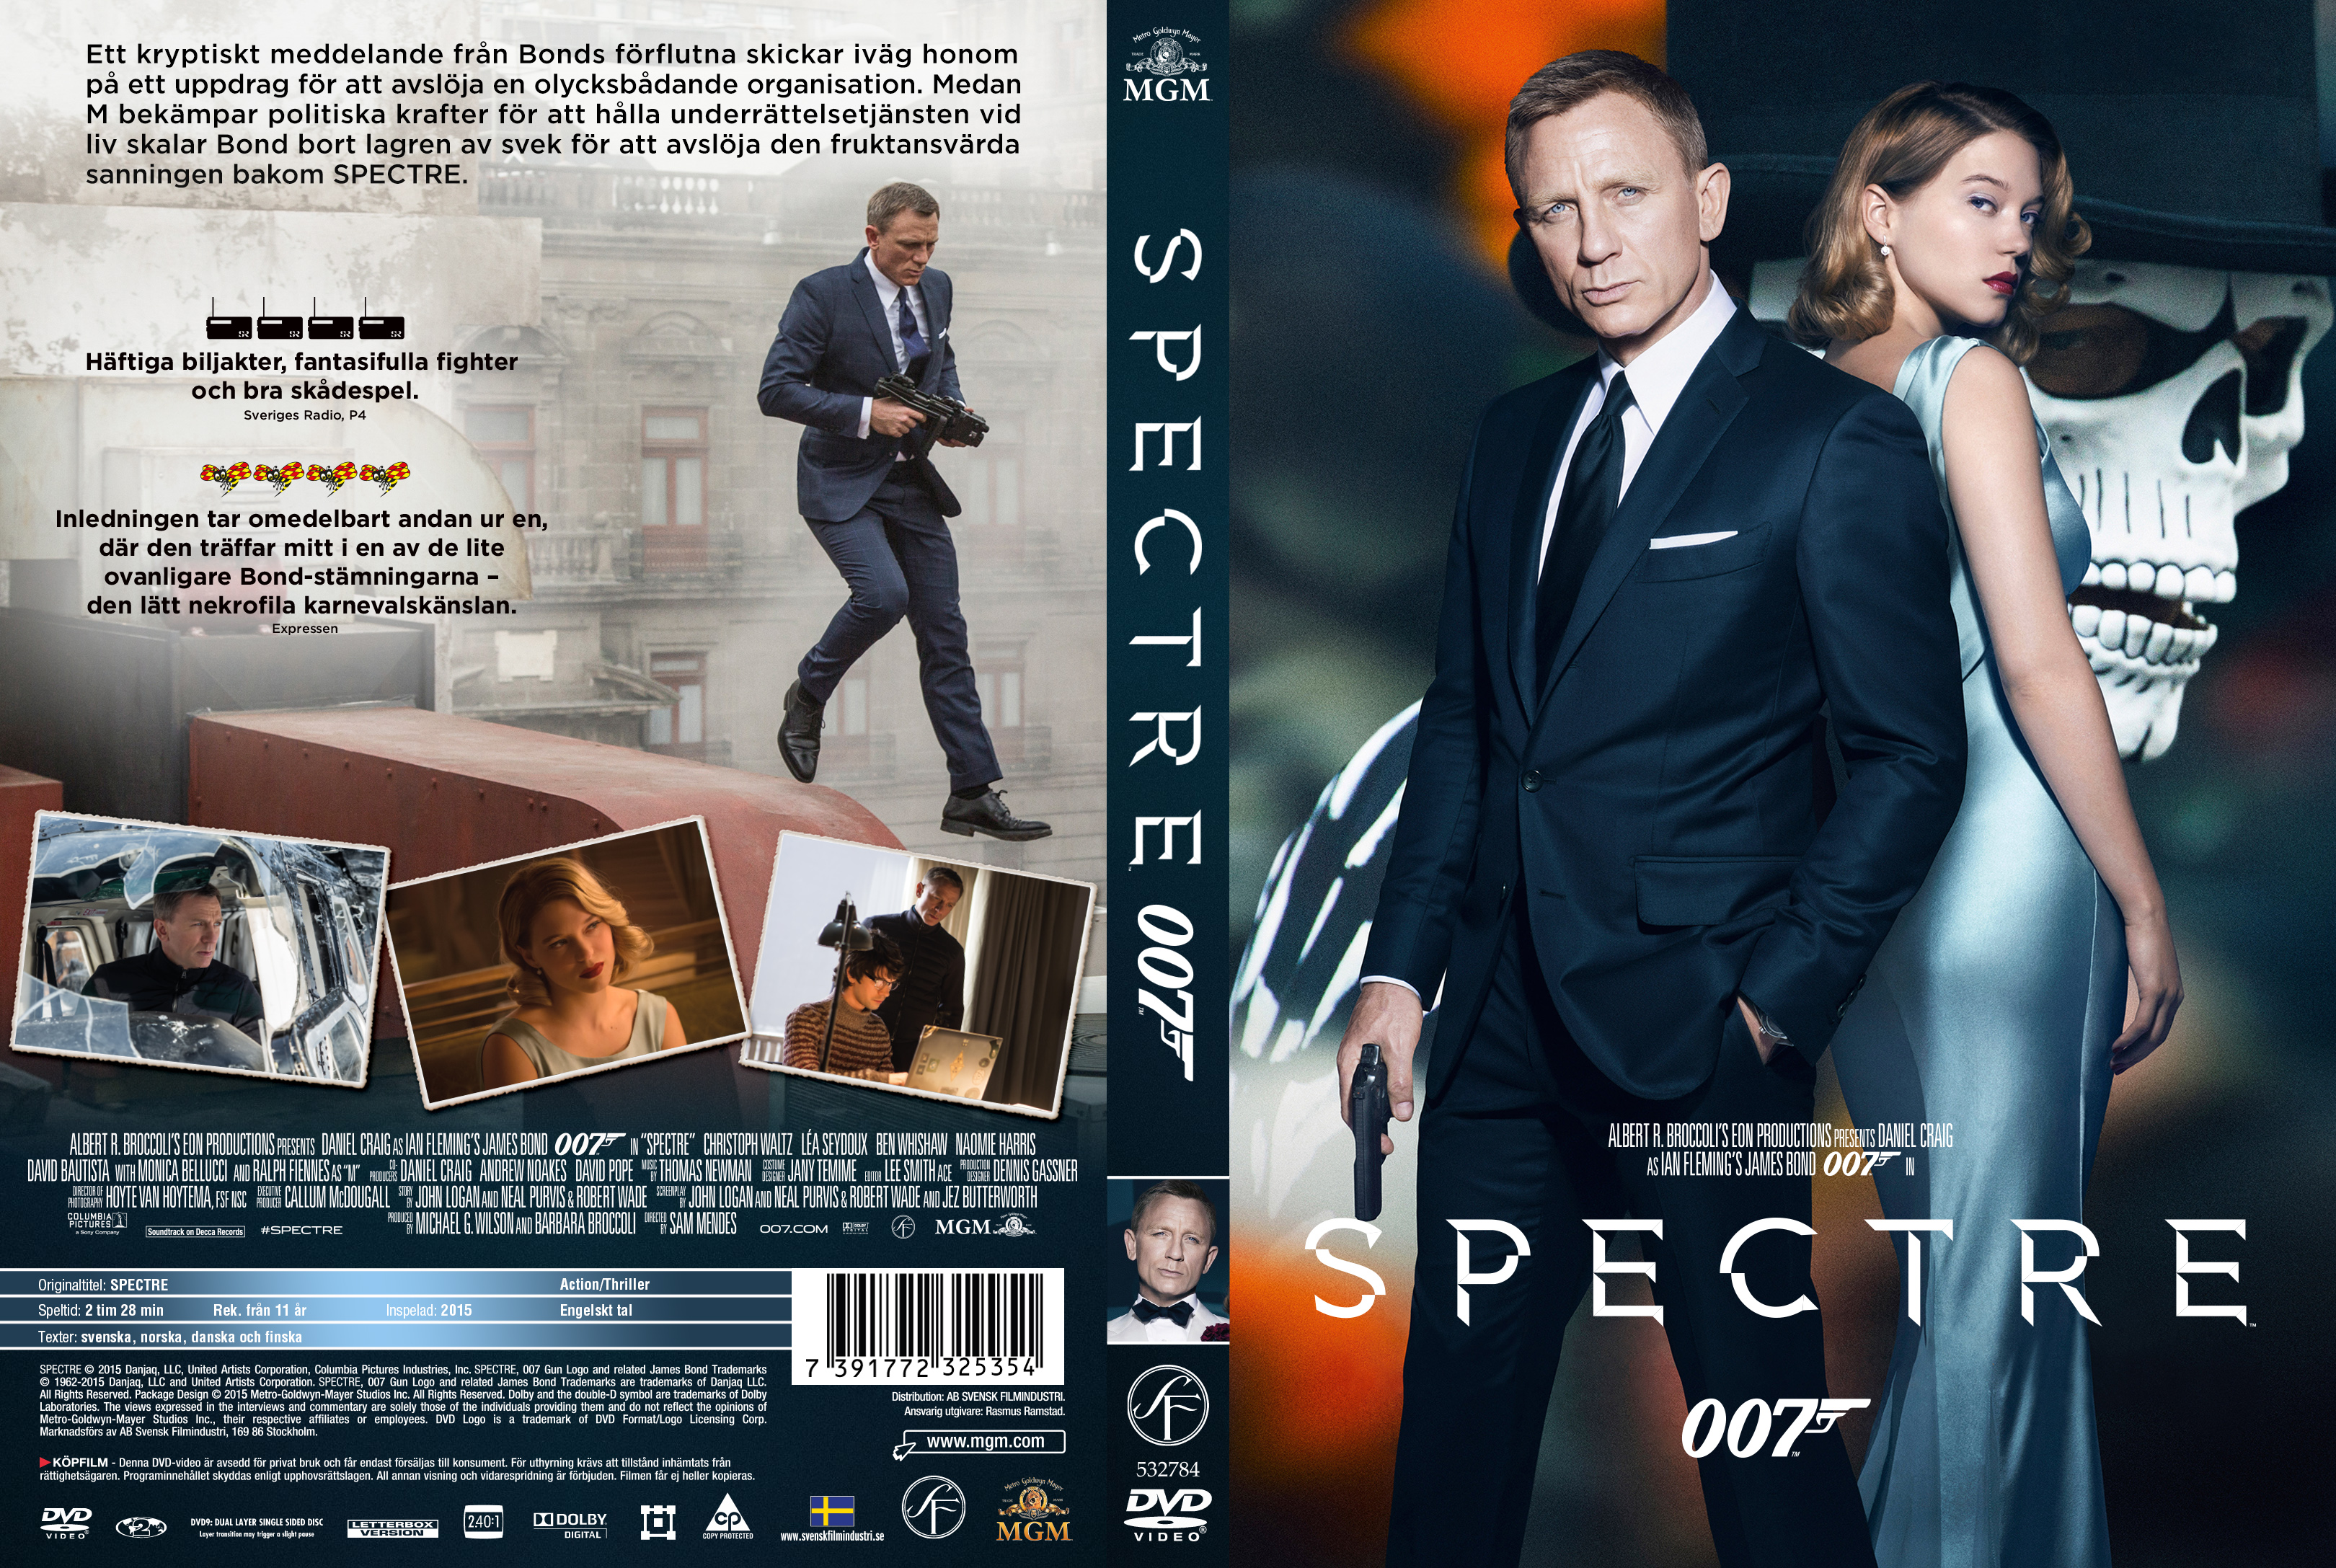 Covers Box Sk Spectre 2015 High Quality Dvd Blueray Movie